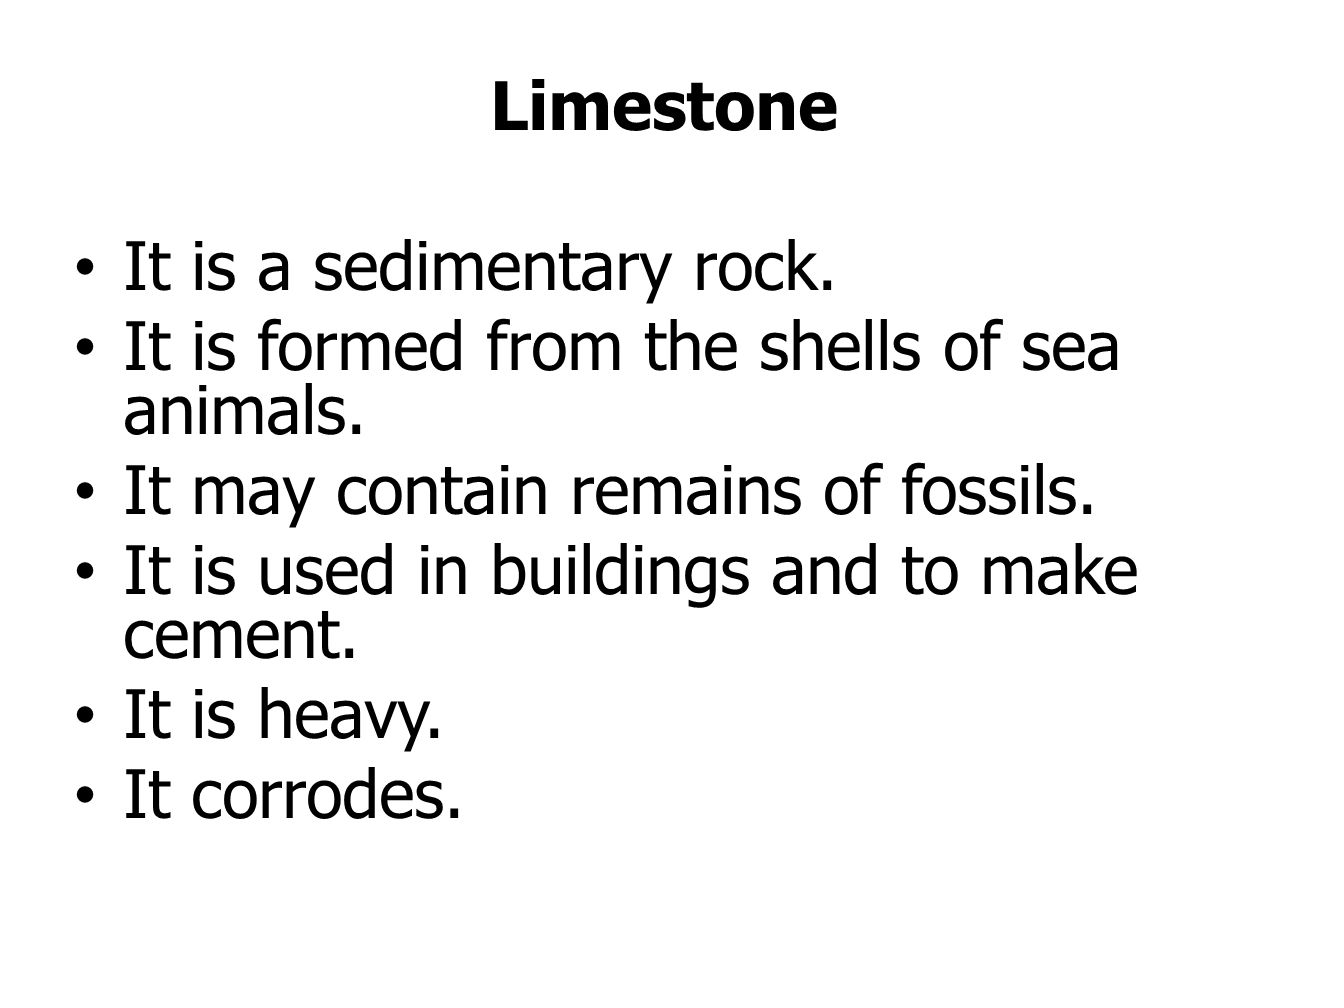 Limestone It is a sedimentary rock. It is formed from the shells of sea animals. It may contain remains of fossils. It is used in buildings and to mak